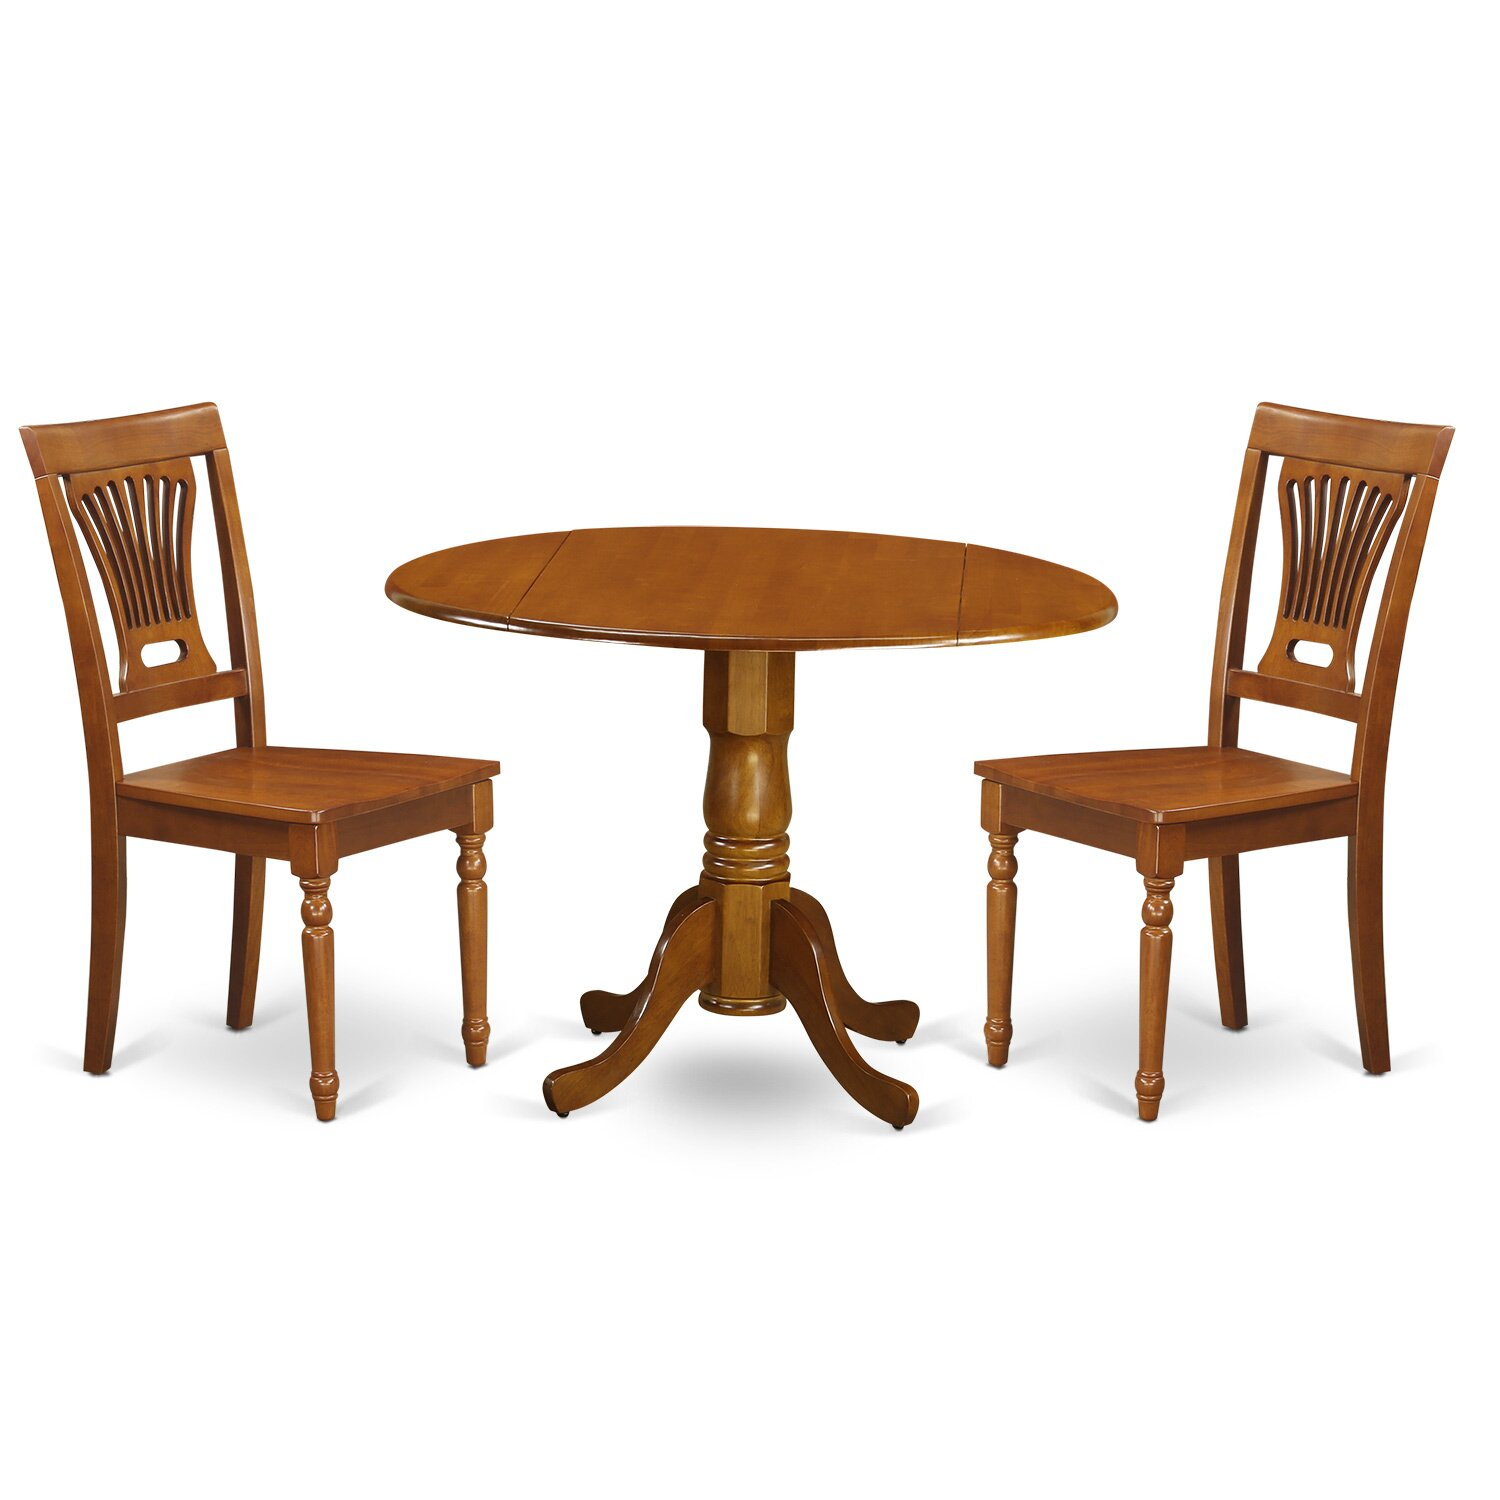 Marvelous photograph of  Furniture 3 Piece Kitchen & Dining Room Sets Wooden Importers SKU with #7E451C color and 1500x1500 pixels